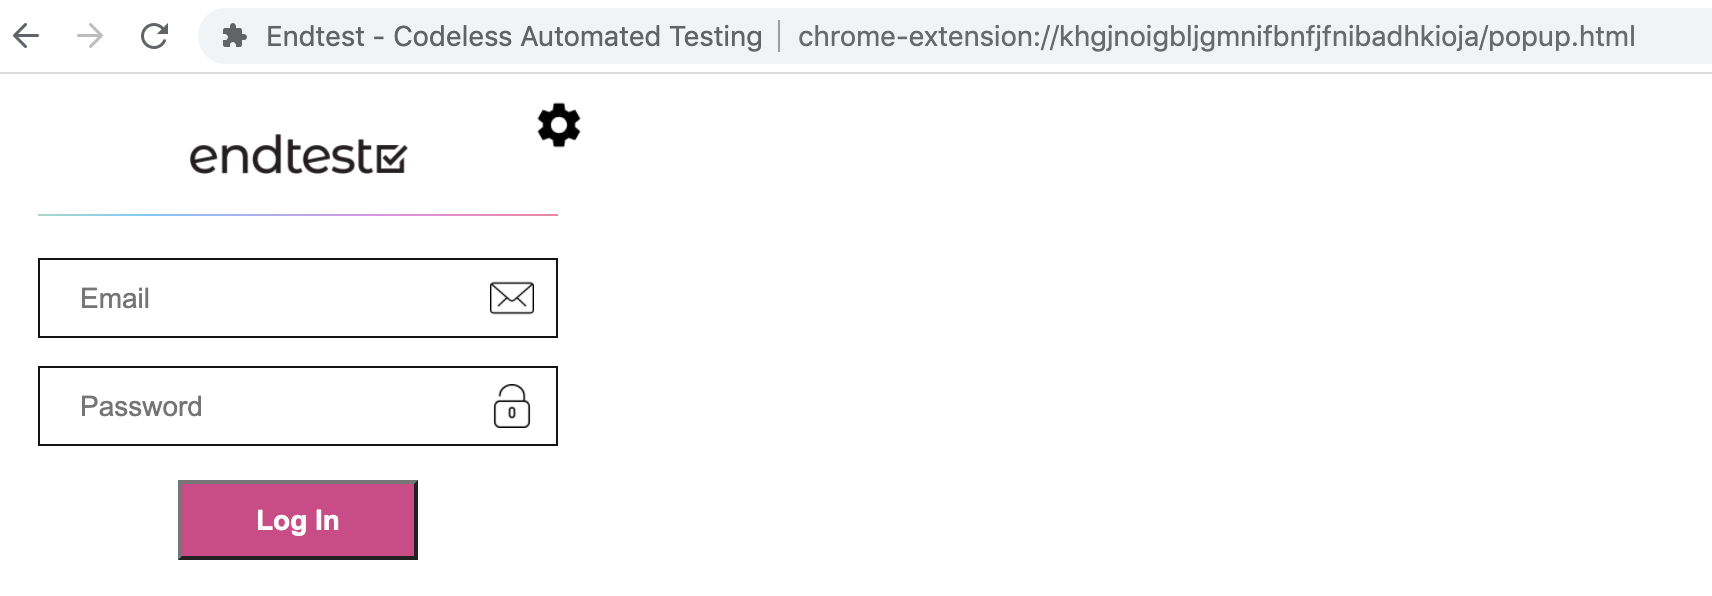 endtest migrate from selenium